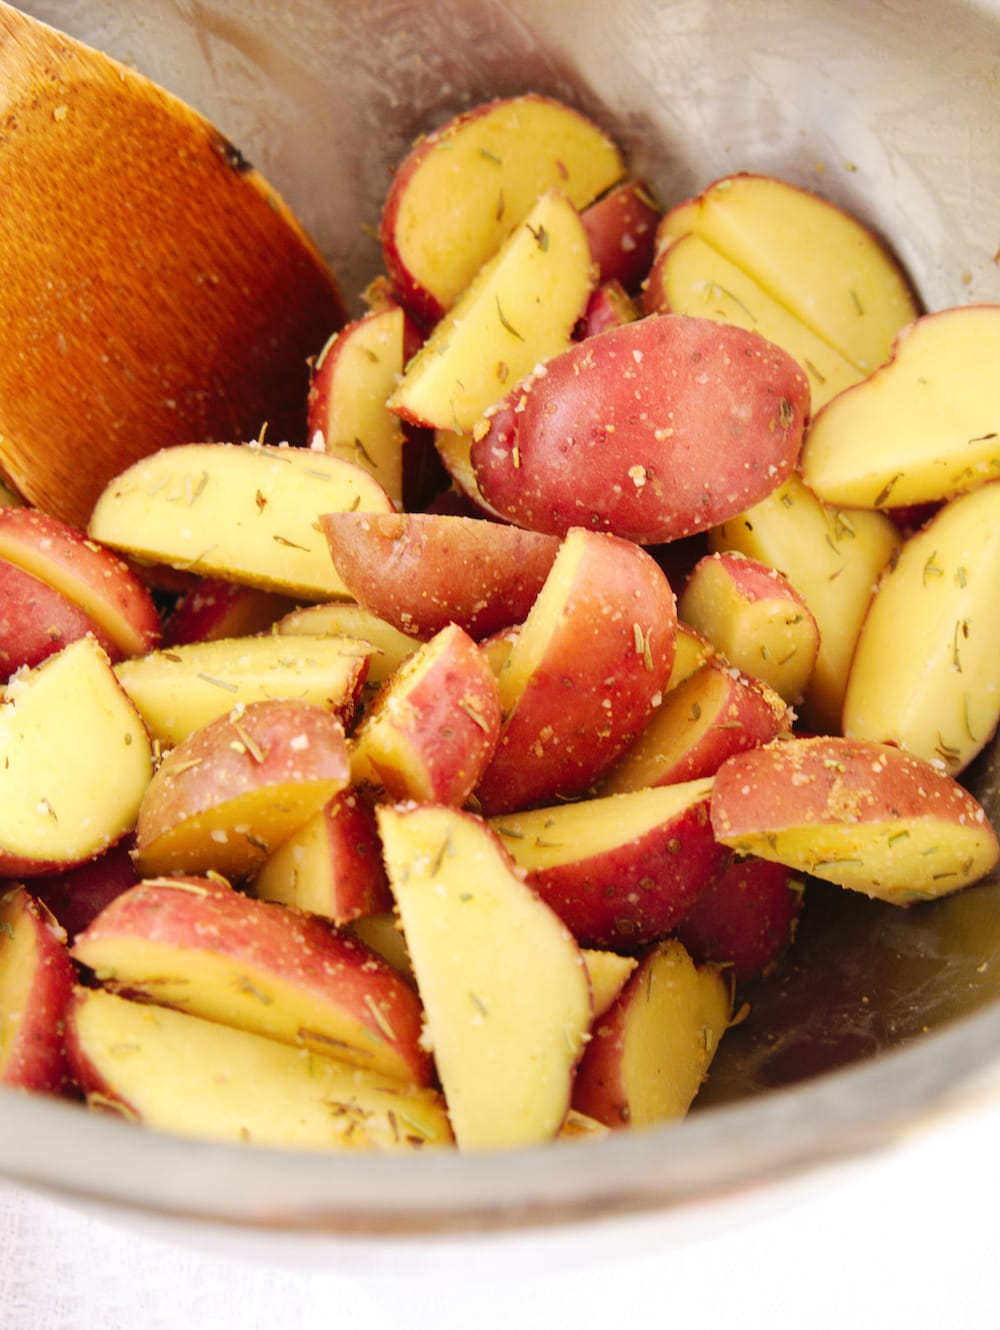 Red potatoes coated with oil and seasonings.